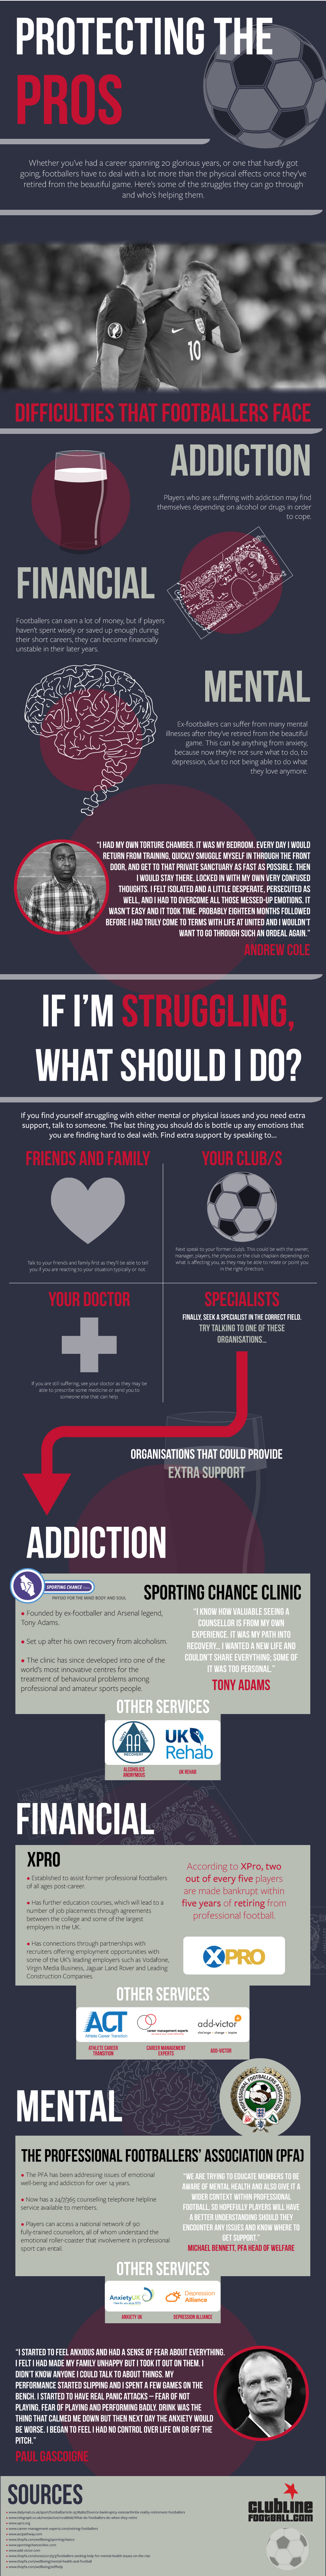 Protecting The Pros [Infographic]